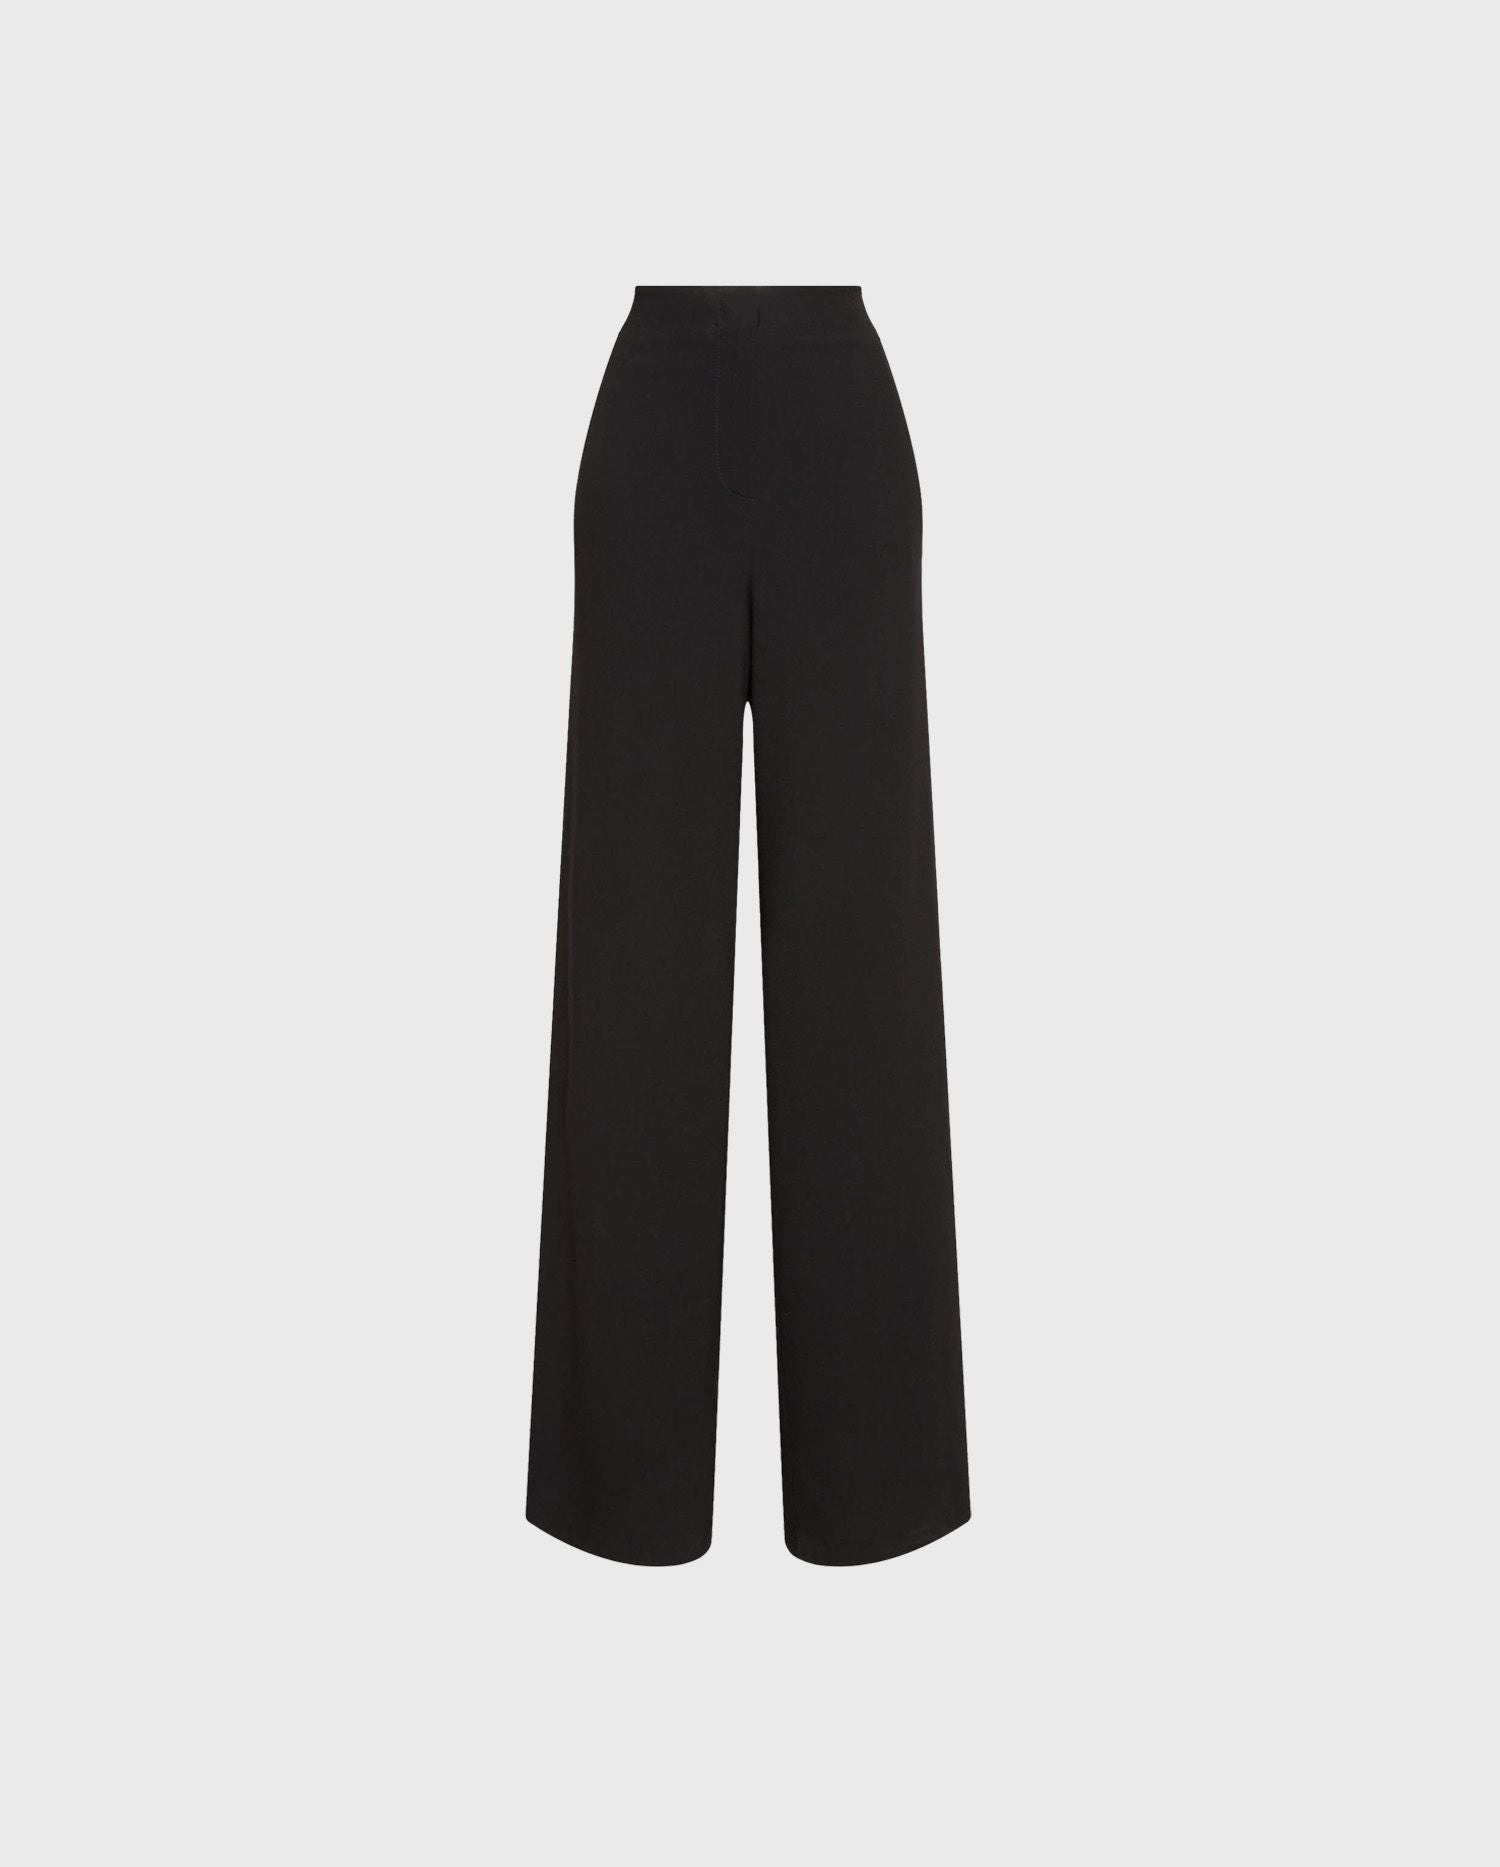 Add the MORGAN black palazzo pants to your wardrobe for an easy chic silhouette